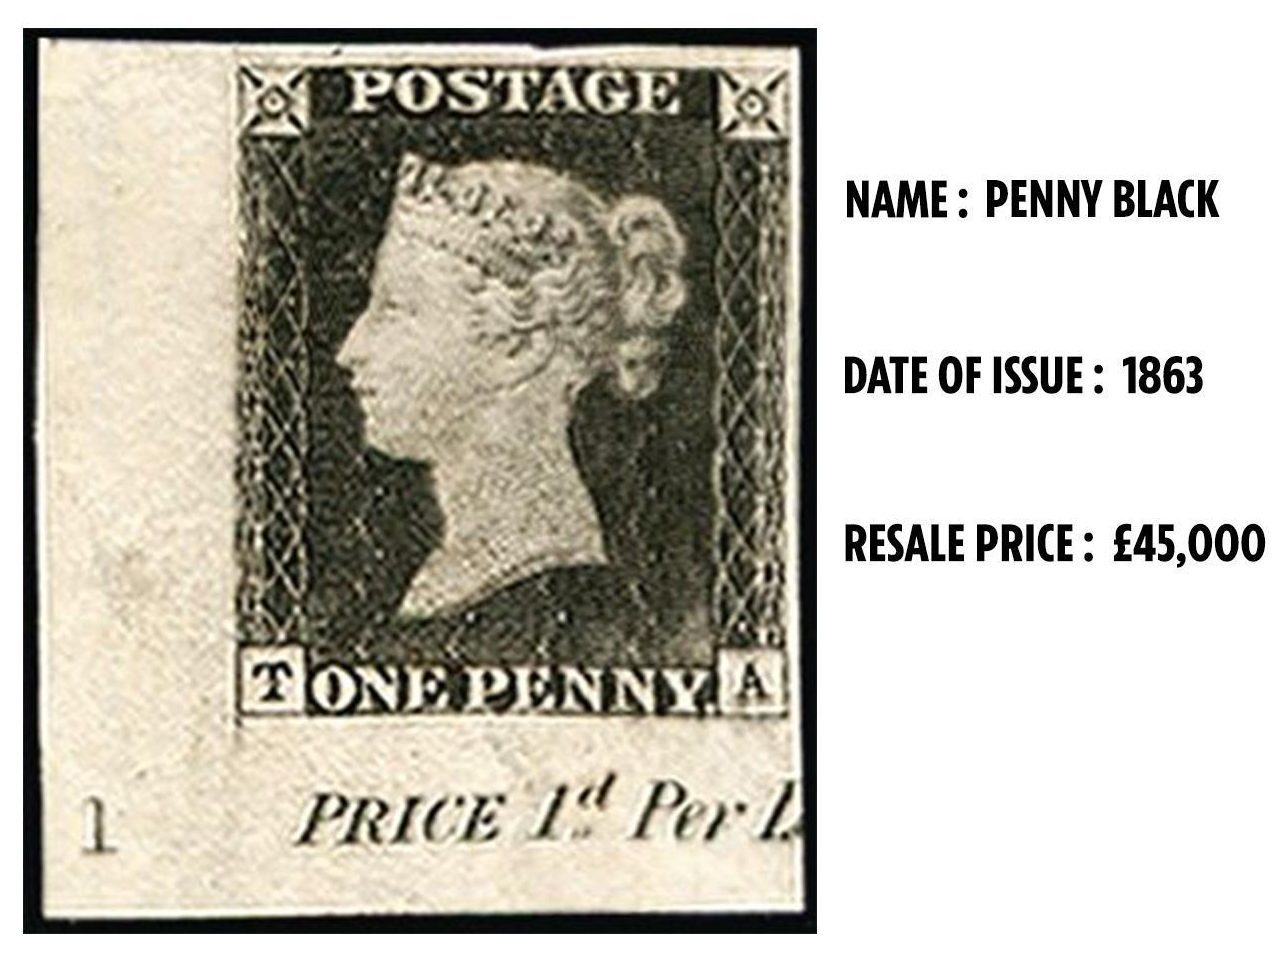 The Penny Black is the world's first stamp